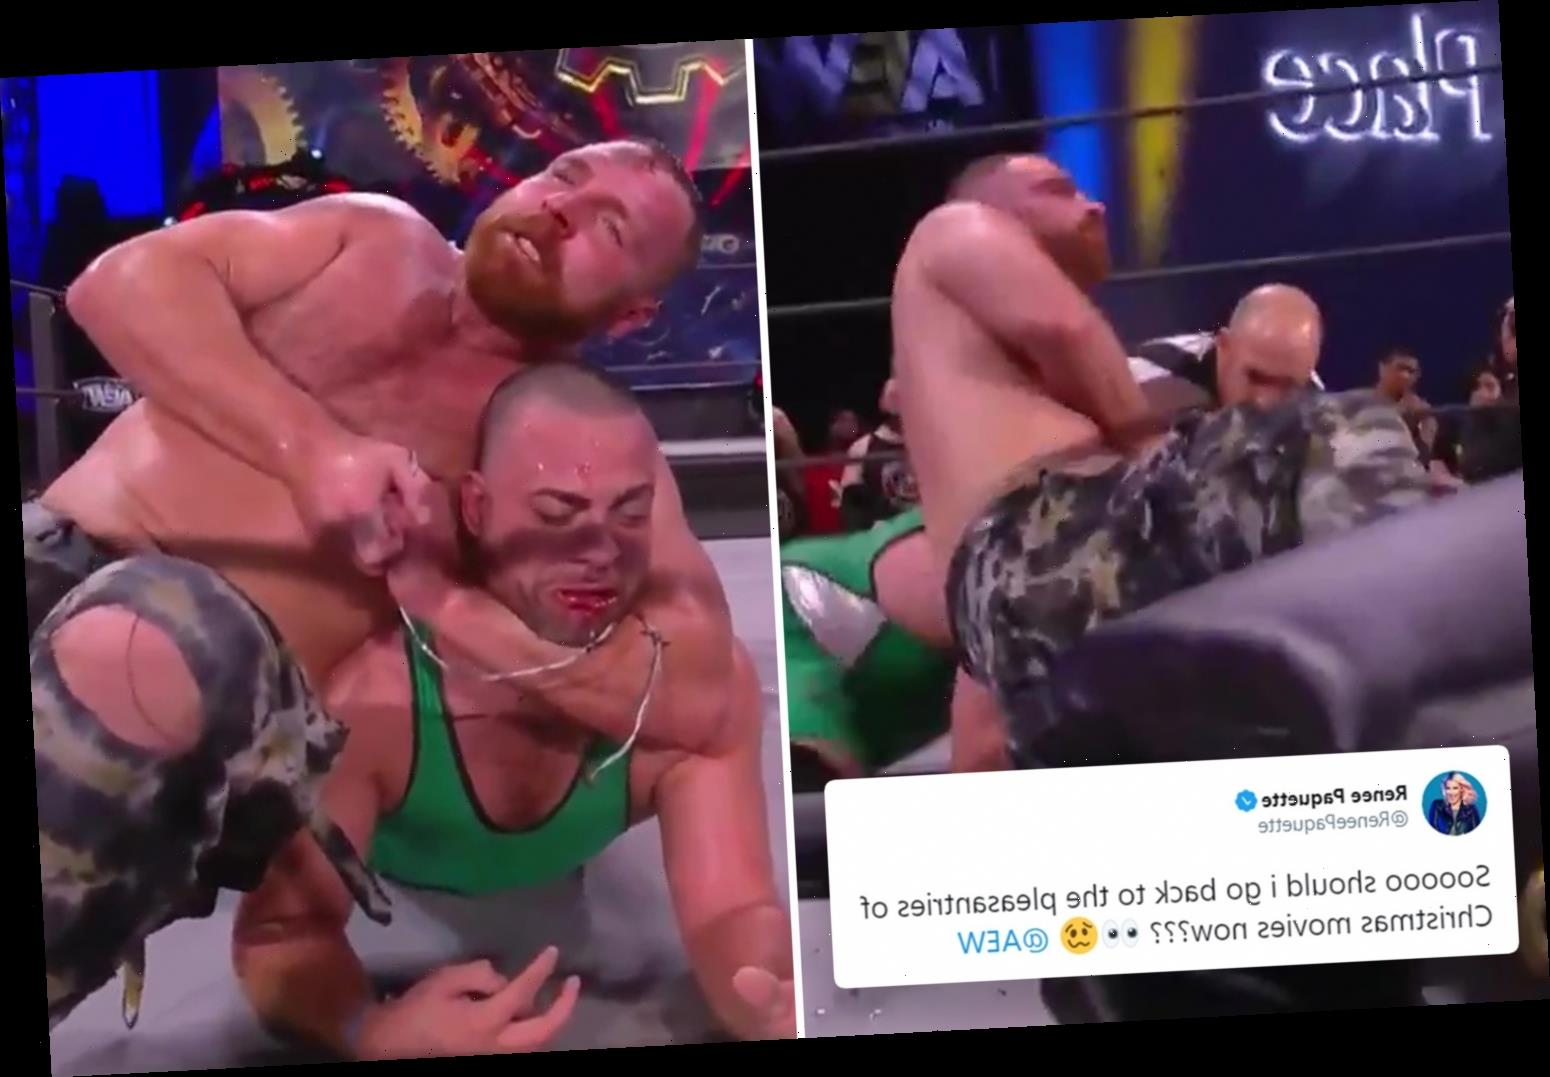 AEW star Jon Moxley's wife Renee reacts to barbaric Full Gear match that left ex-WWE ace, aka Dean Ambrose, bloody mess